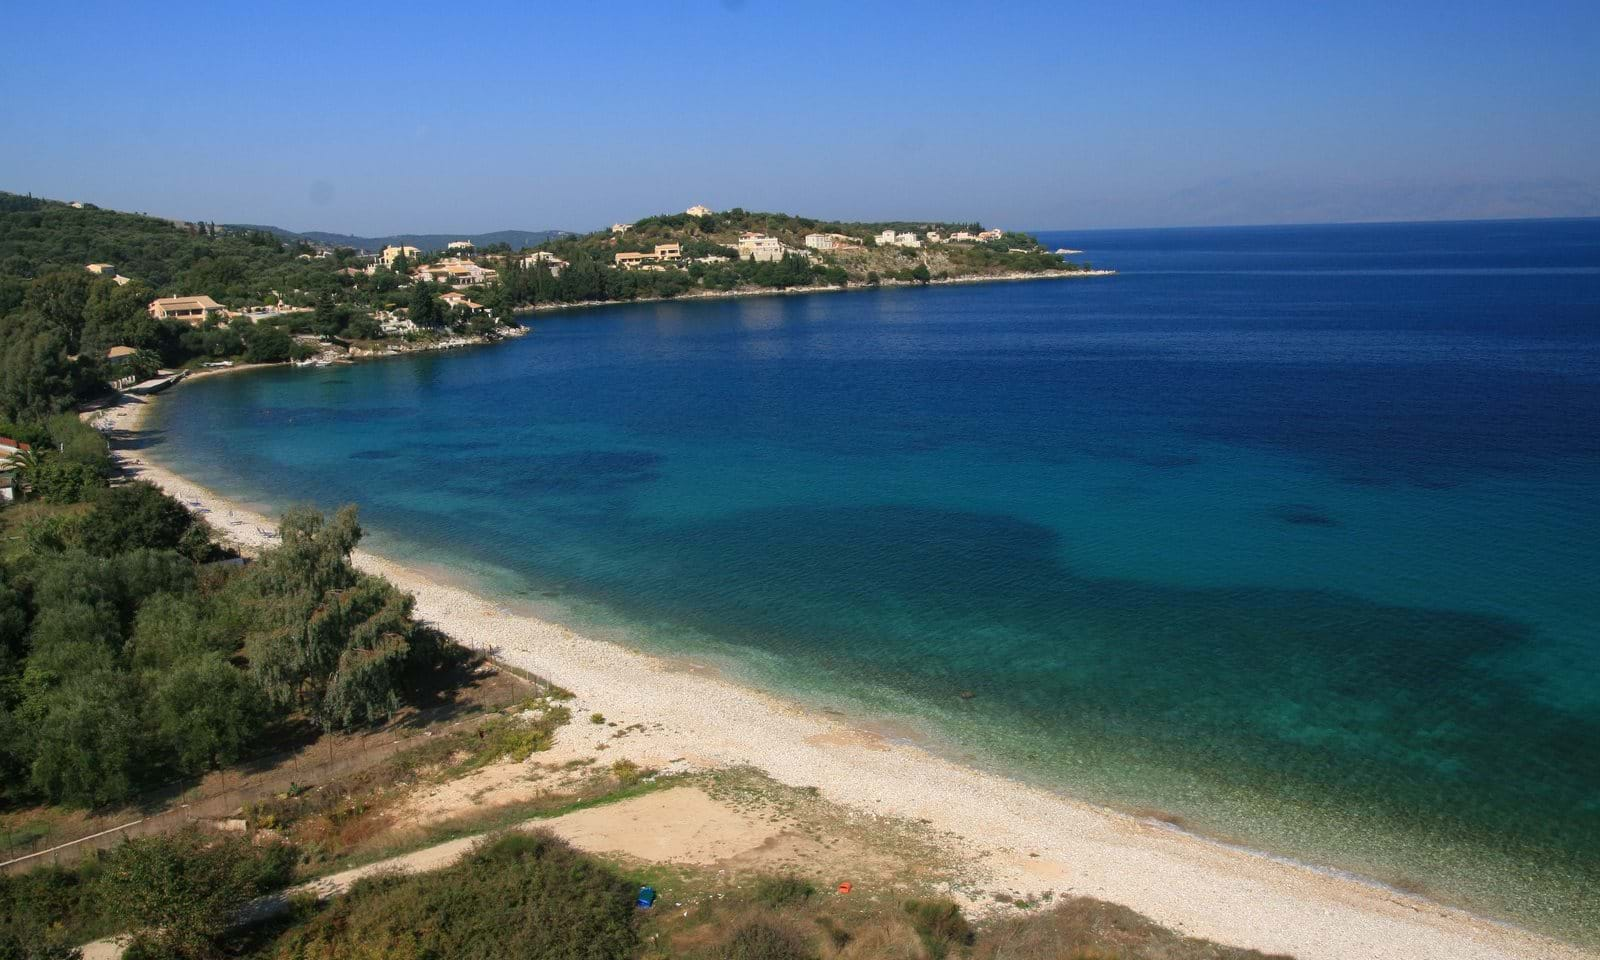 corfu villa near the beach, corfu seaside villa, corfu property